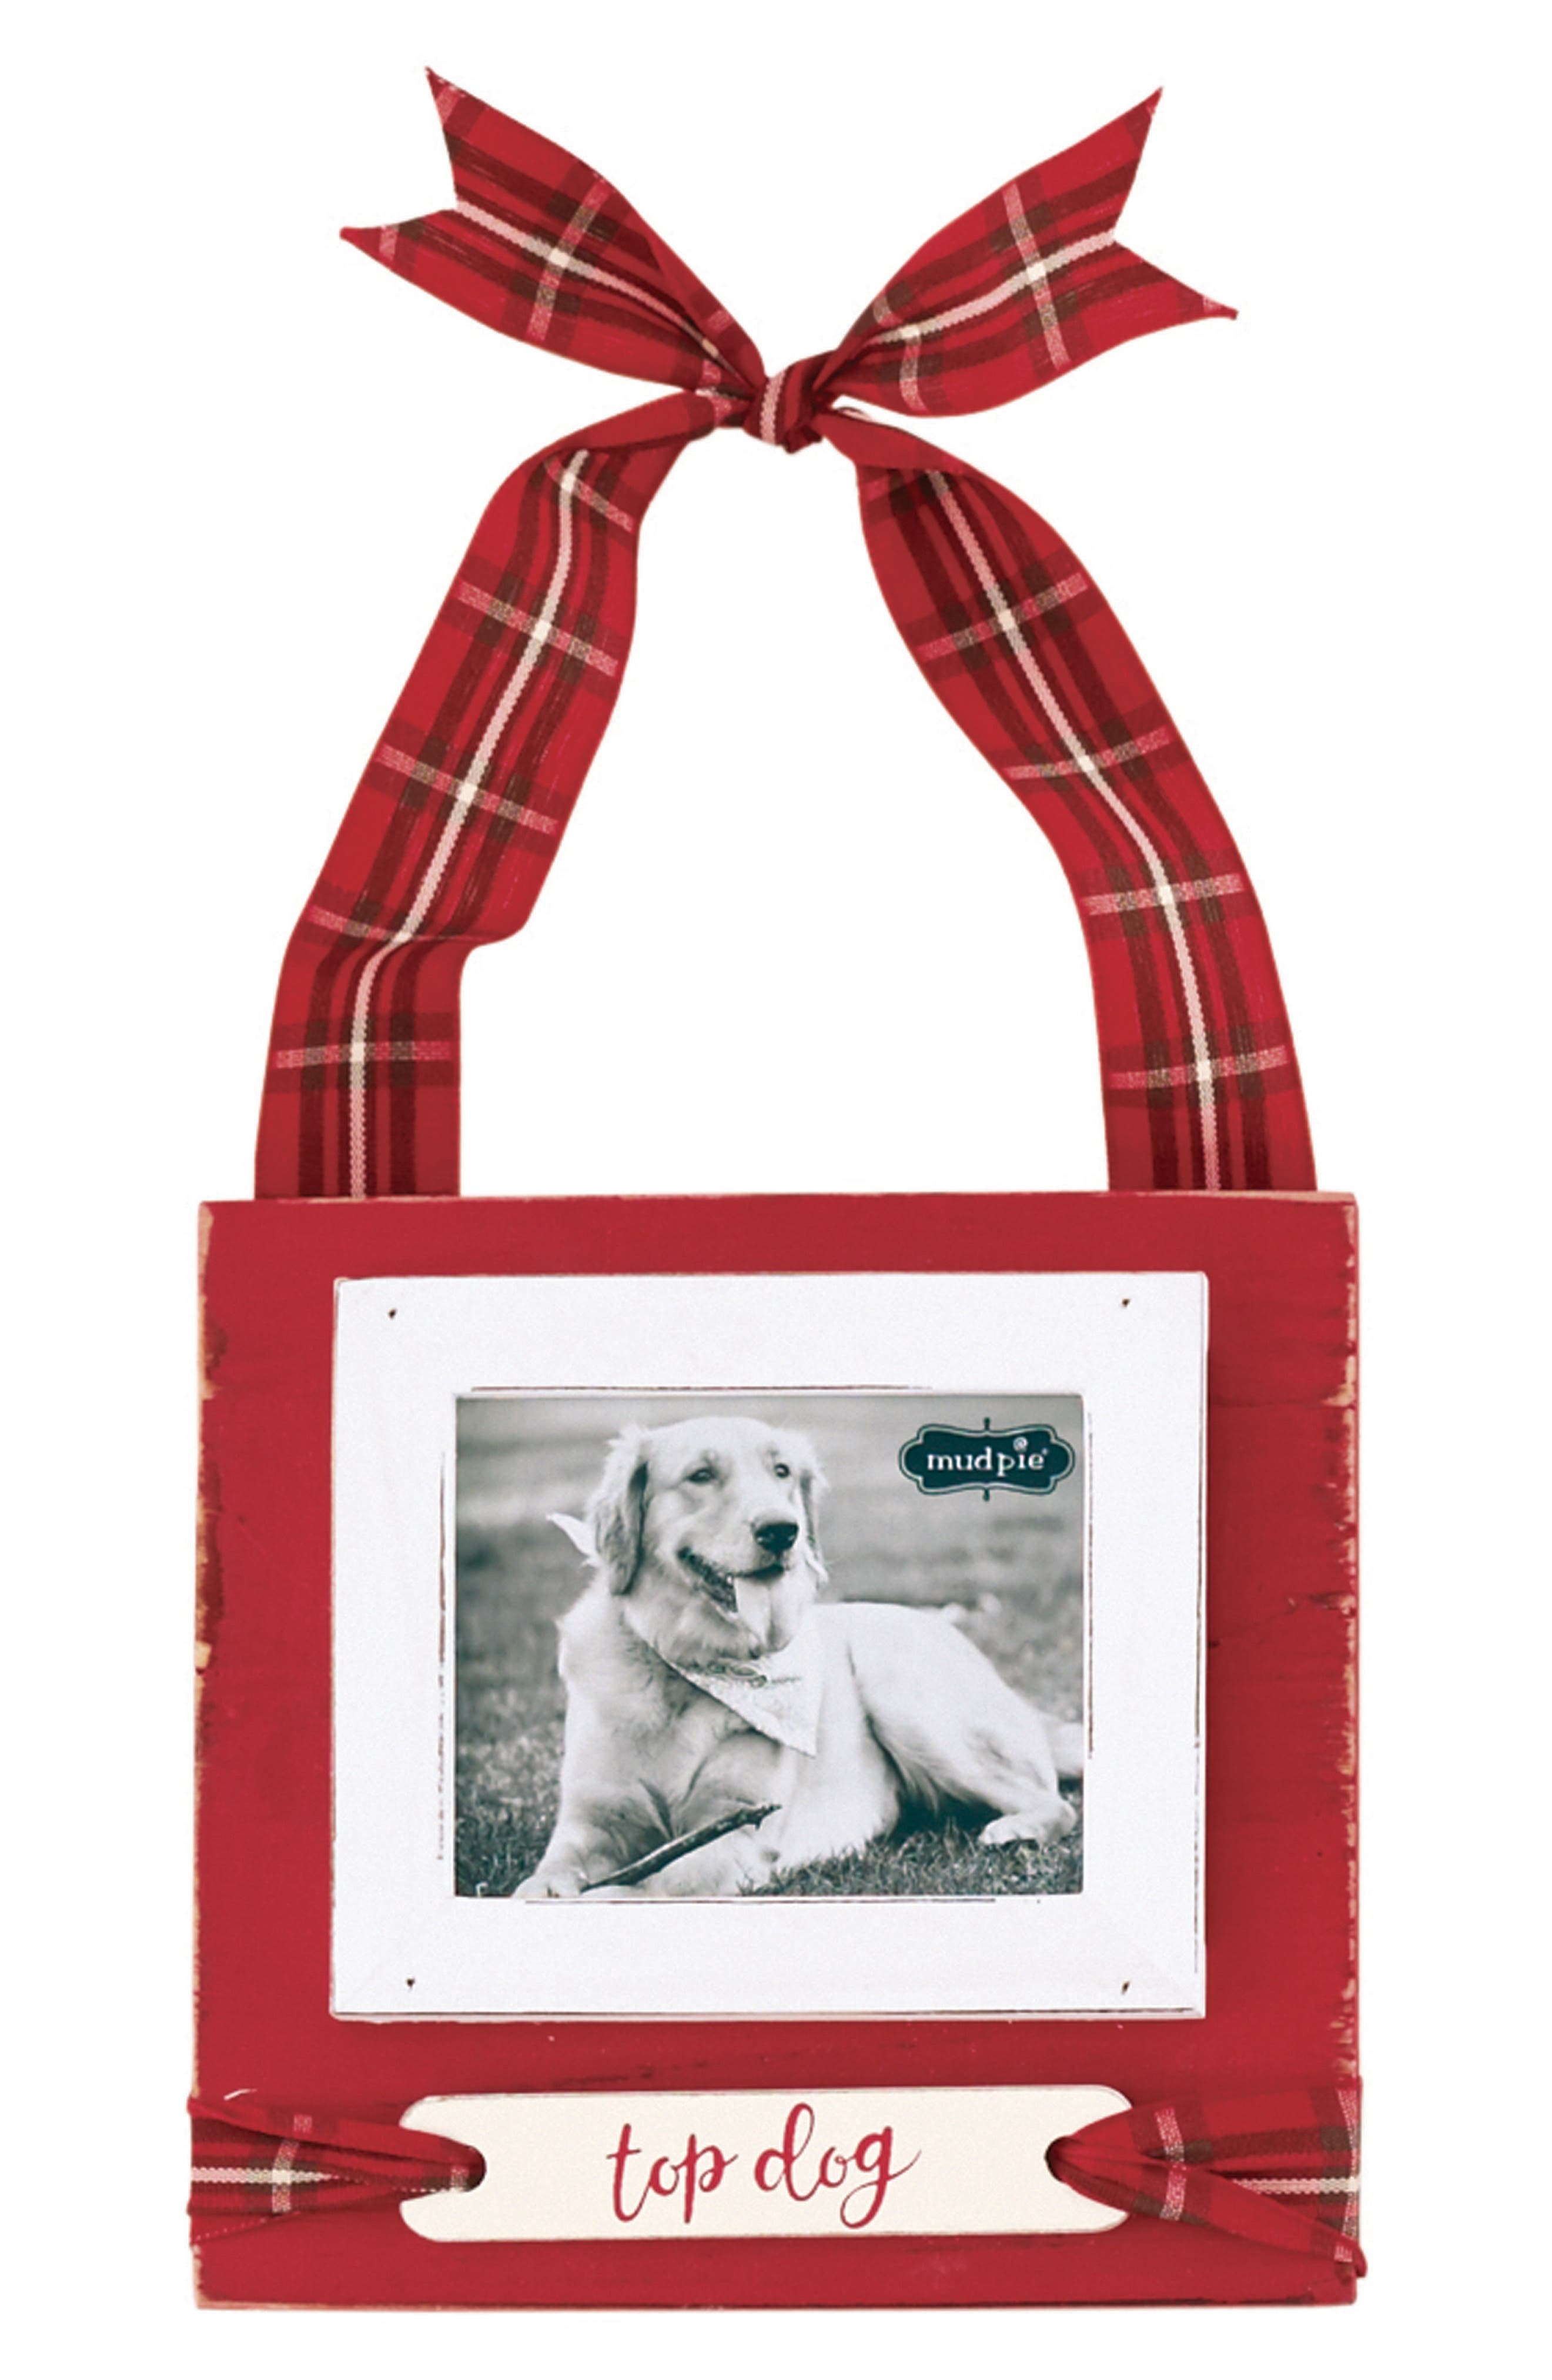 Top Dog Frame Ornament,                             Main thumbnail 1, color,                             100